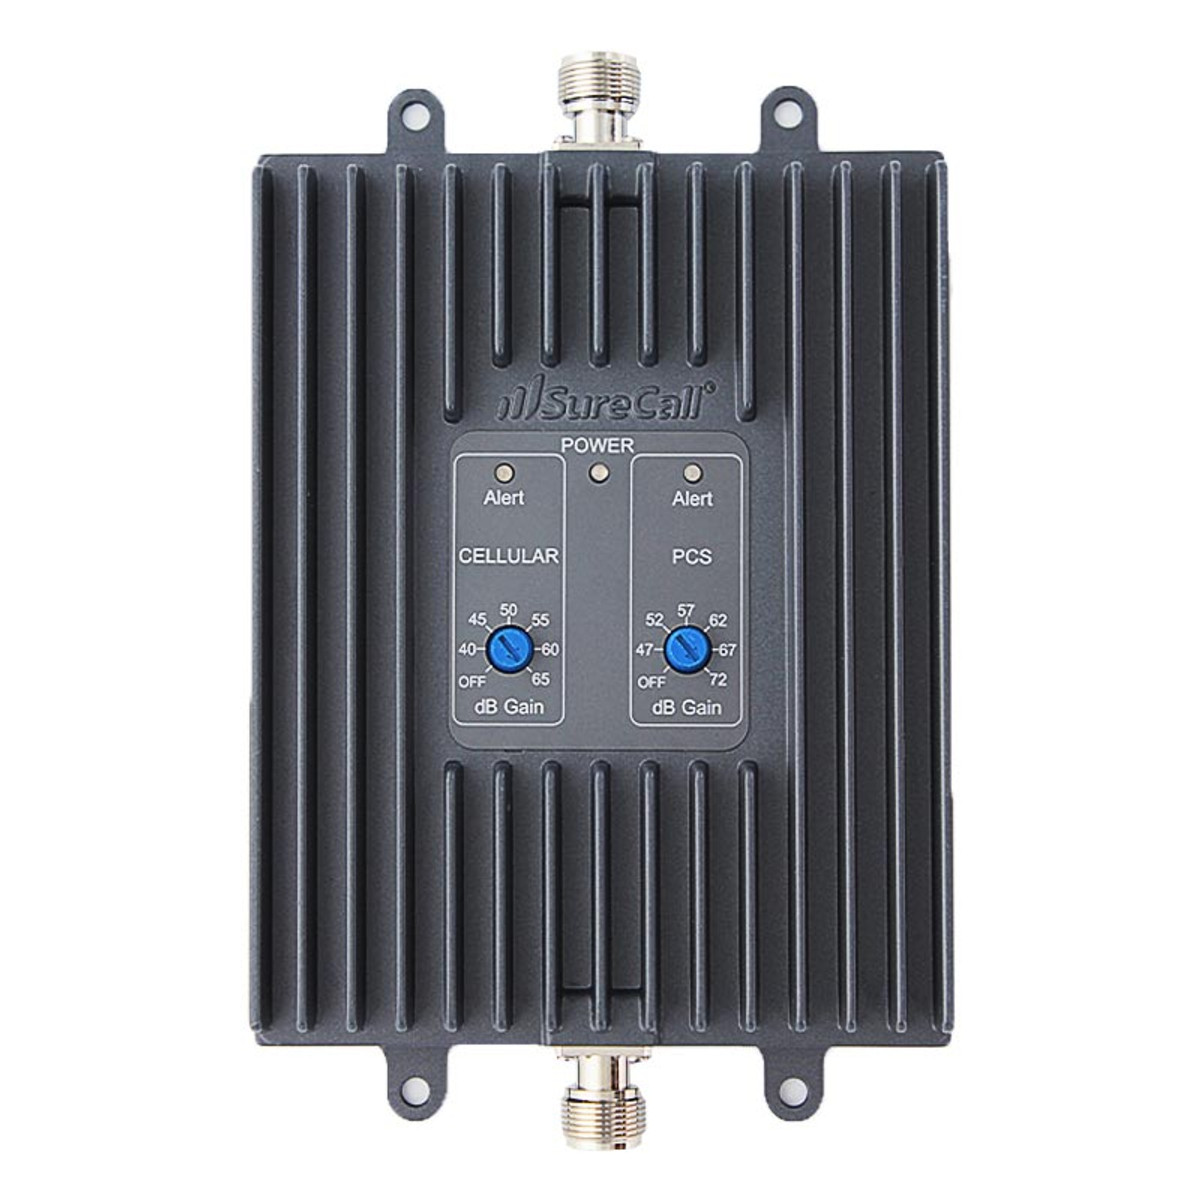 SureCall FlexPro 3G Signal Booster with Omni & Dome Antennas (SC-DualH/O-72-OD-KIT) | Amp